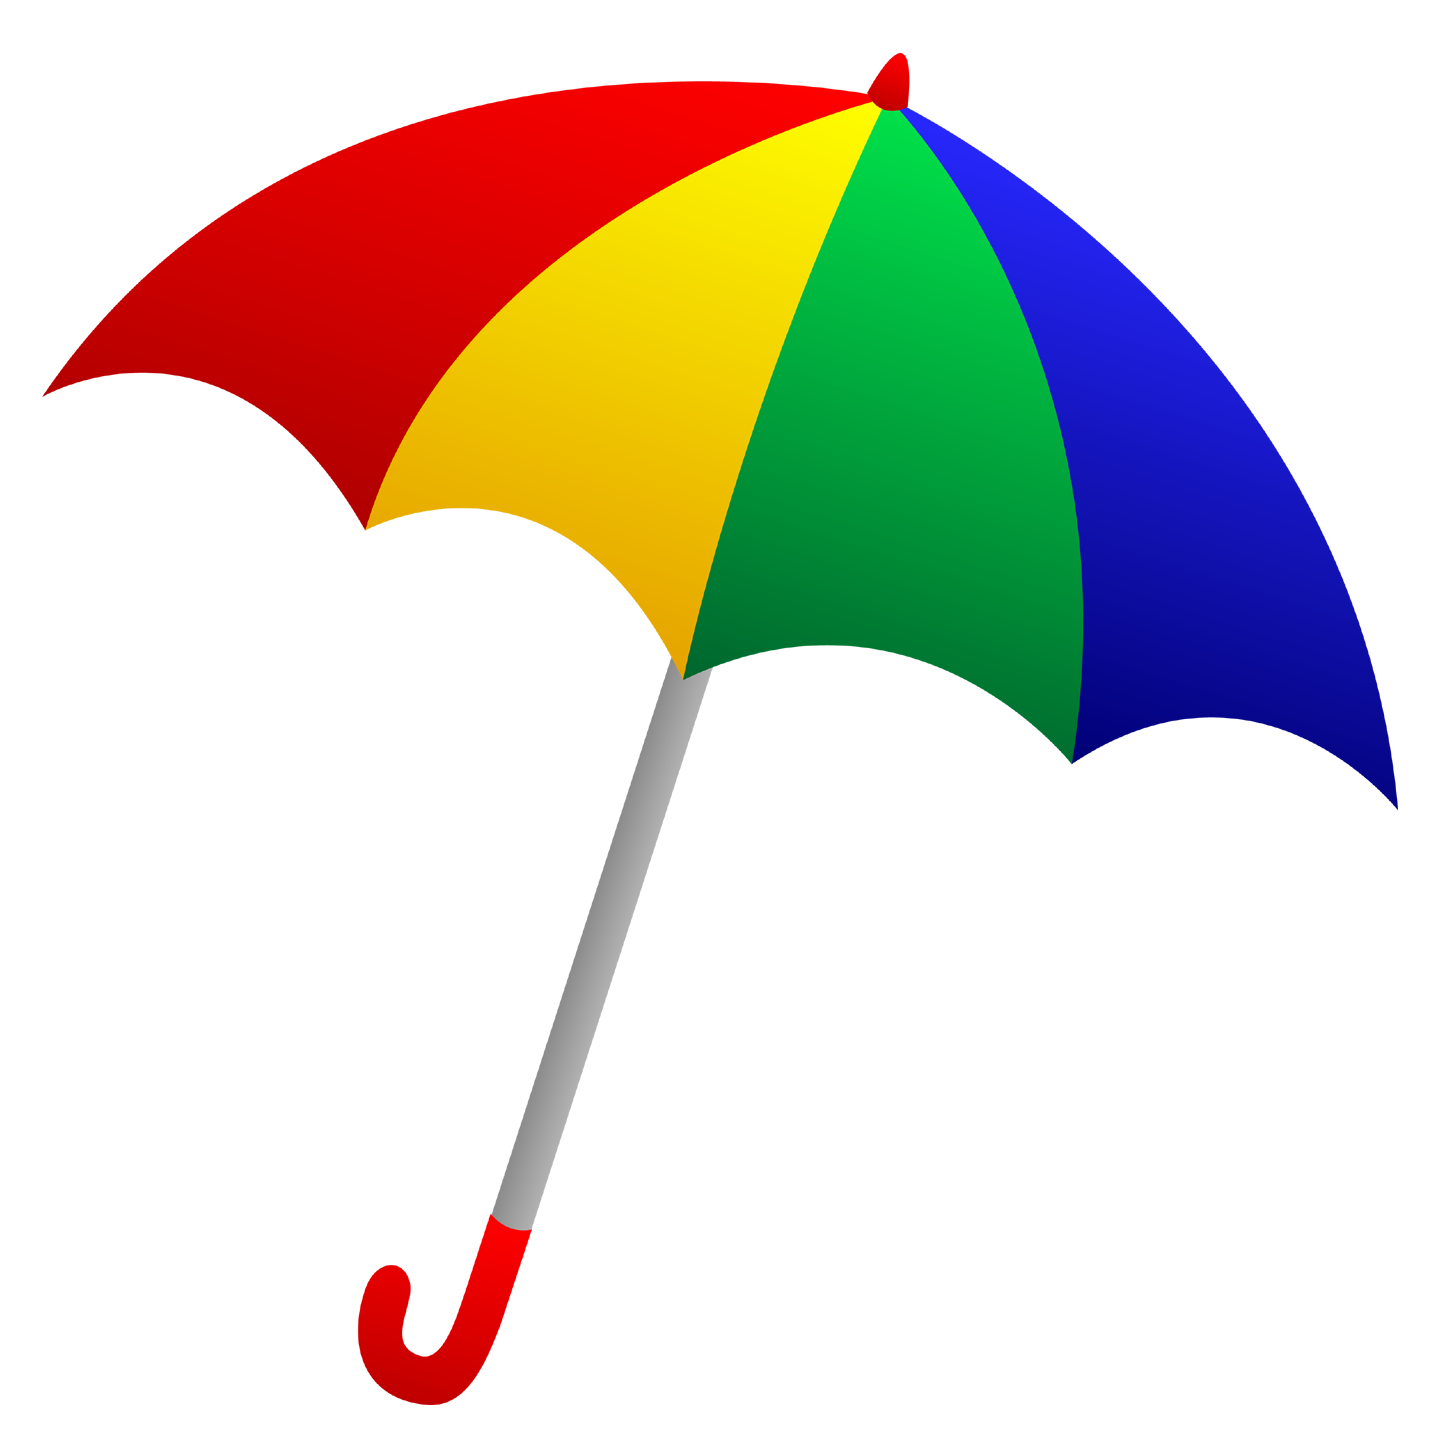 Transparent umbrella clipart.